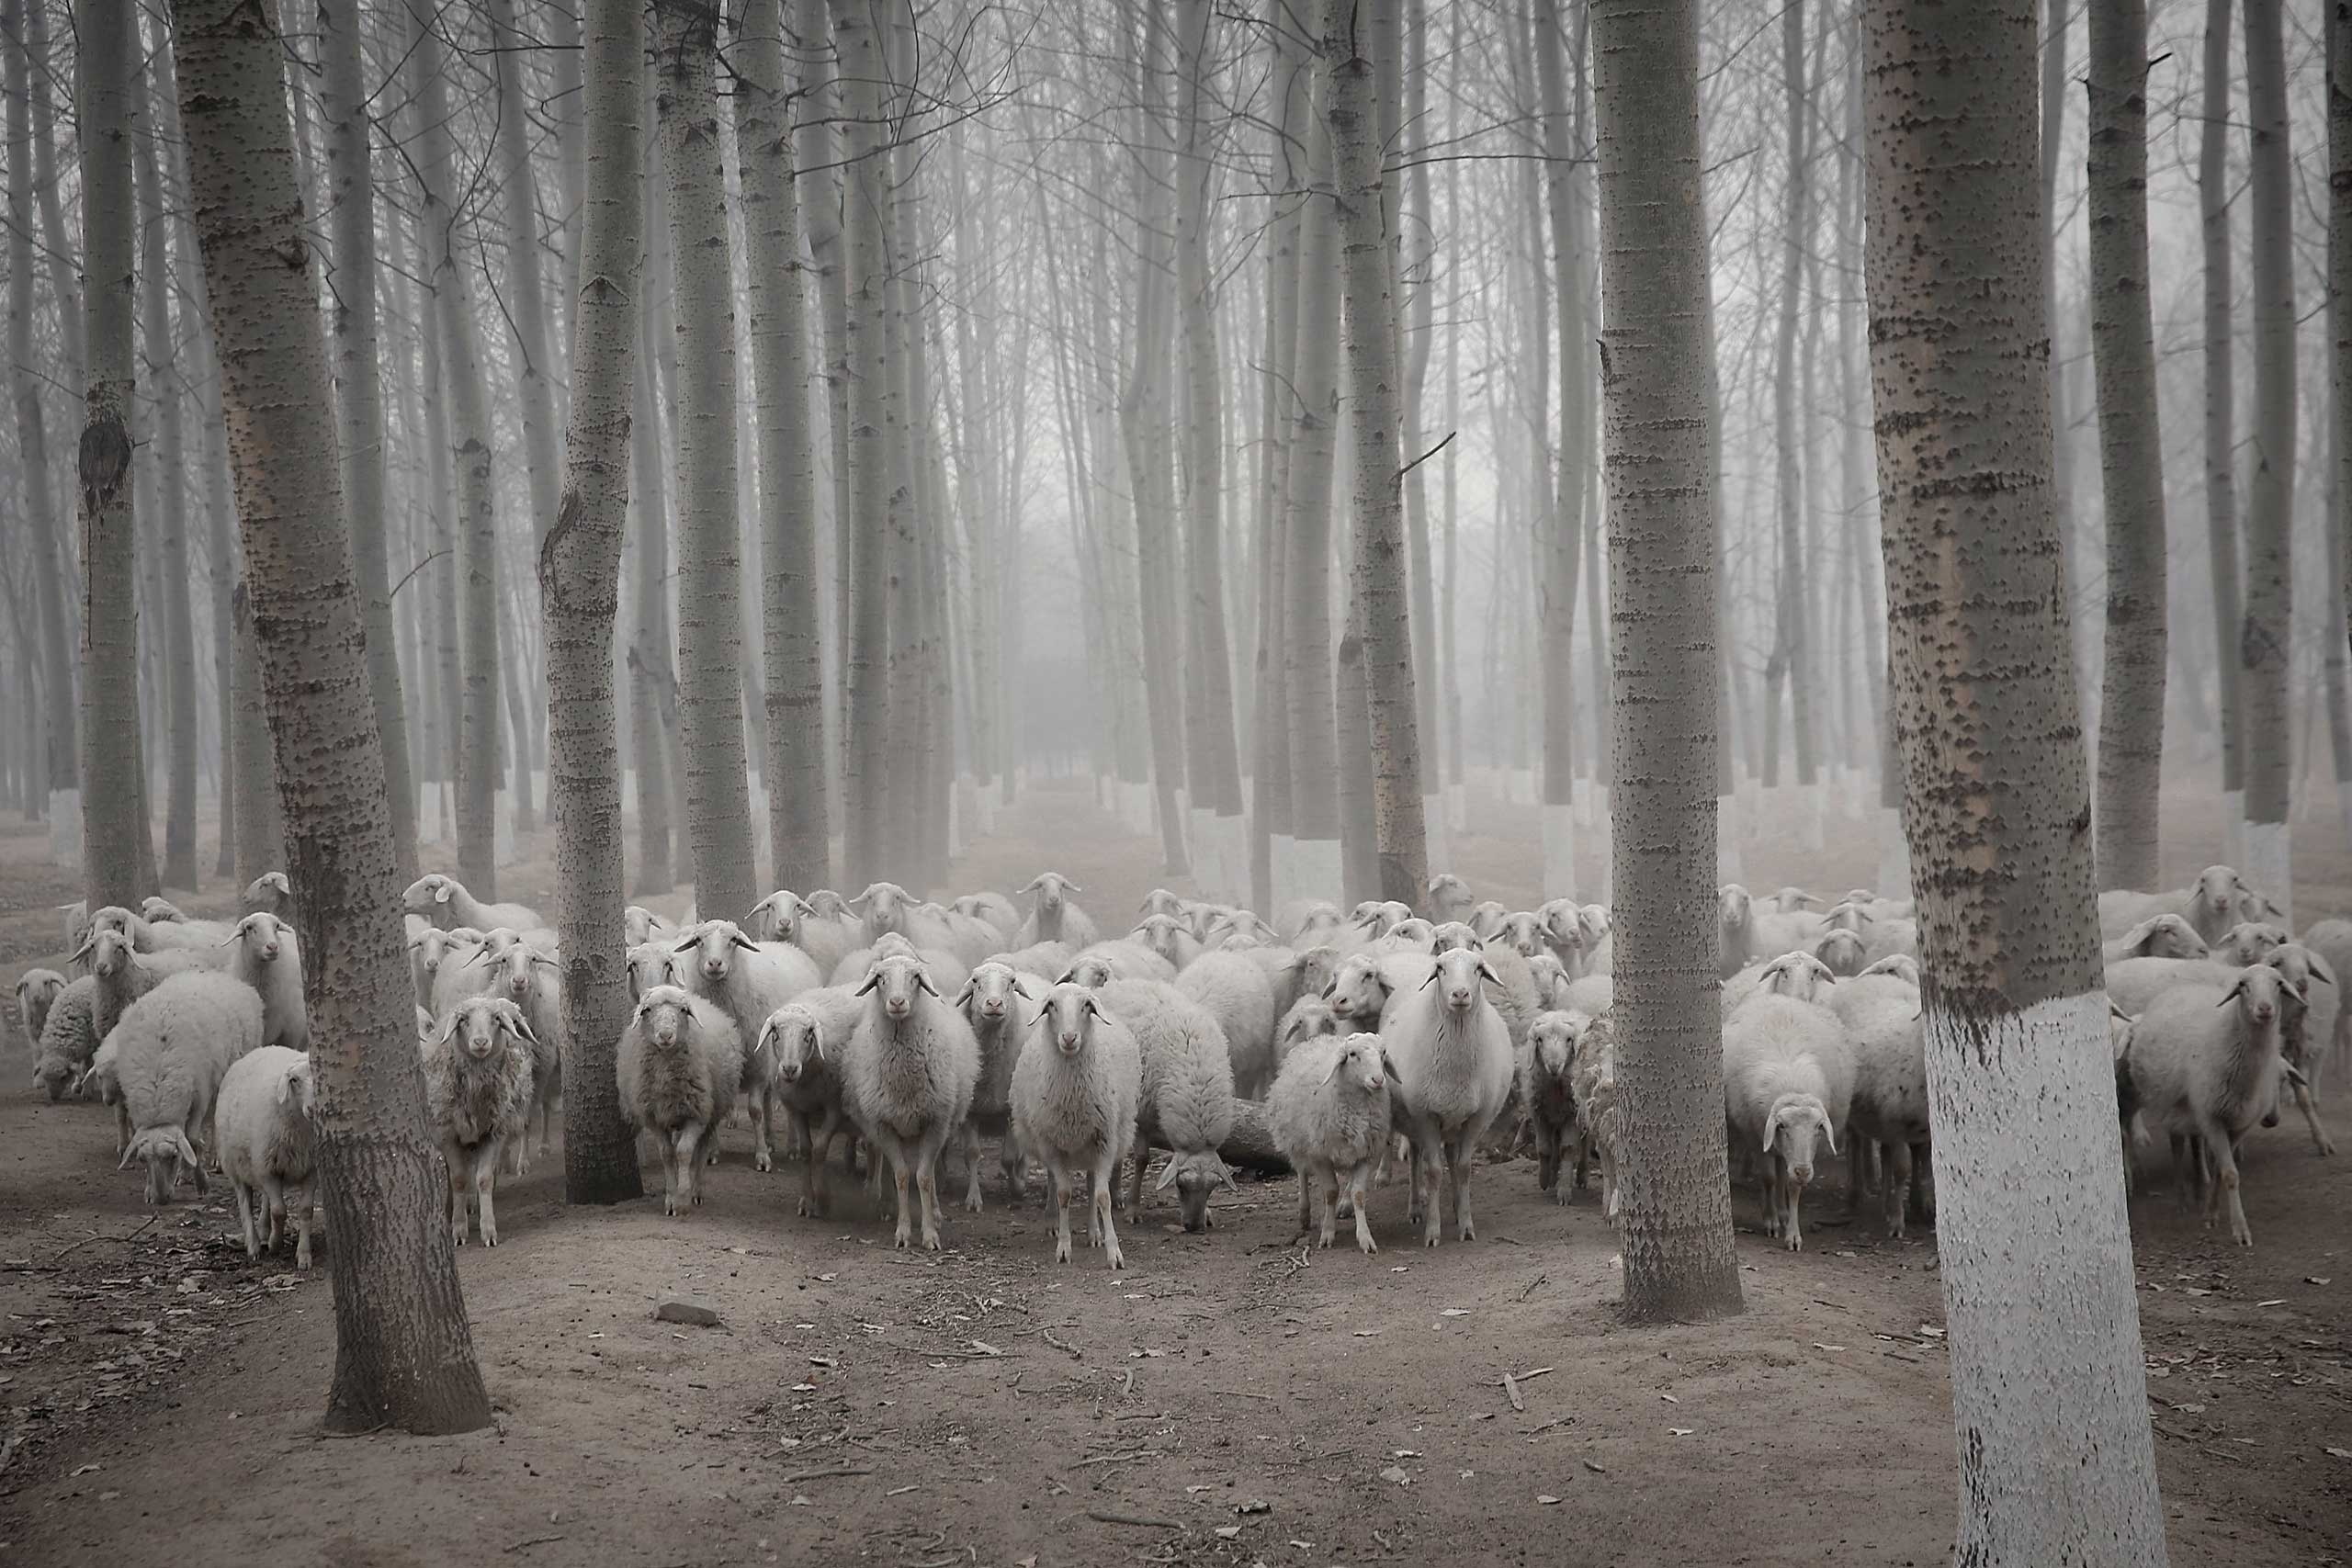 Jan. 15, 2015. A flock of sheep walk in the haze in a Beijing suburb in China.